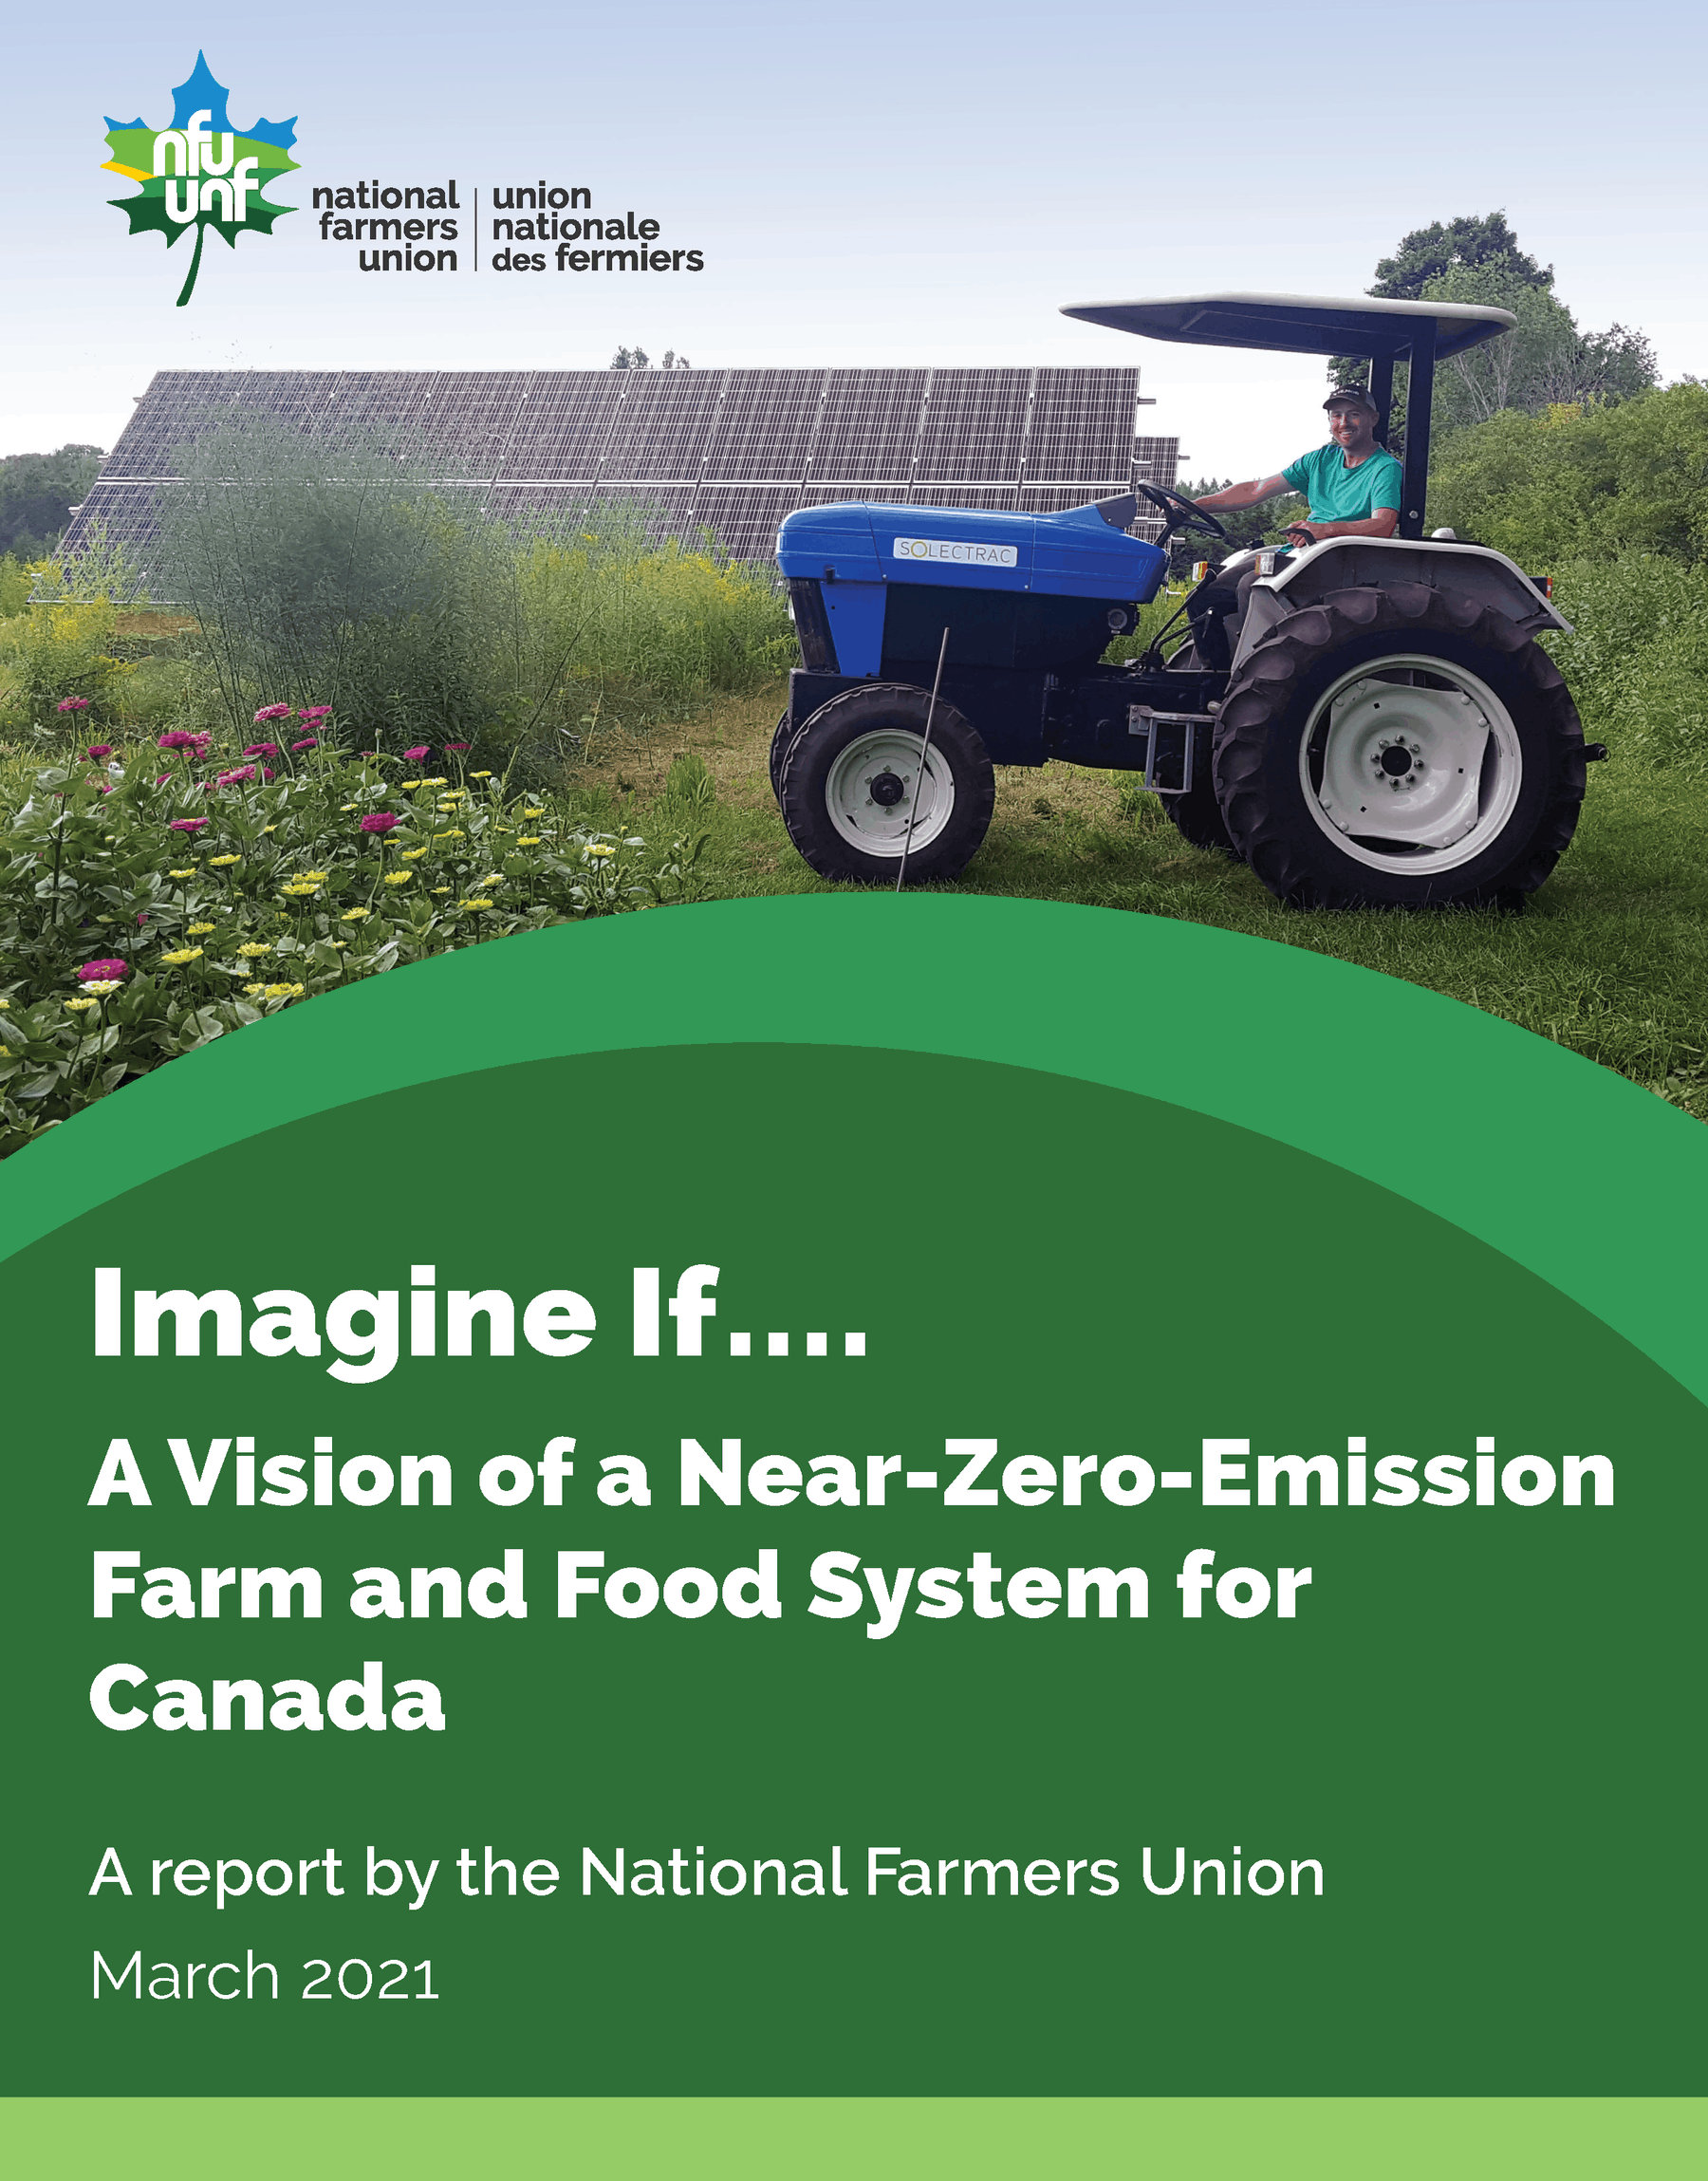 Imagine If: A Vision of a Near-Zero-Emission Farm and Food System for Canada